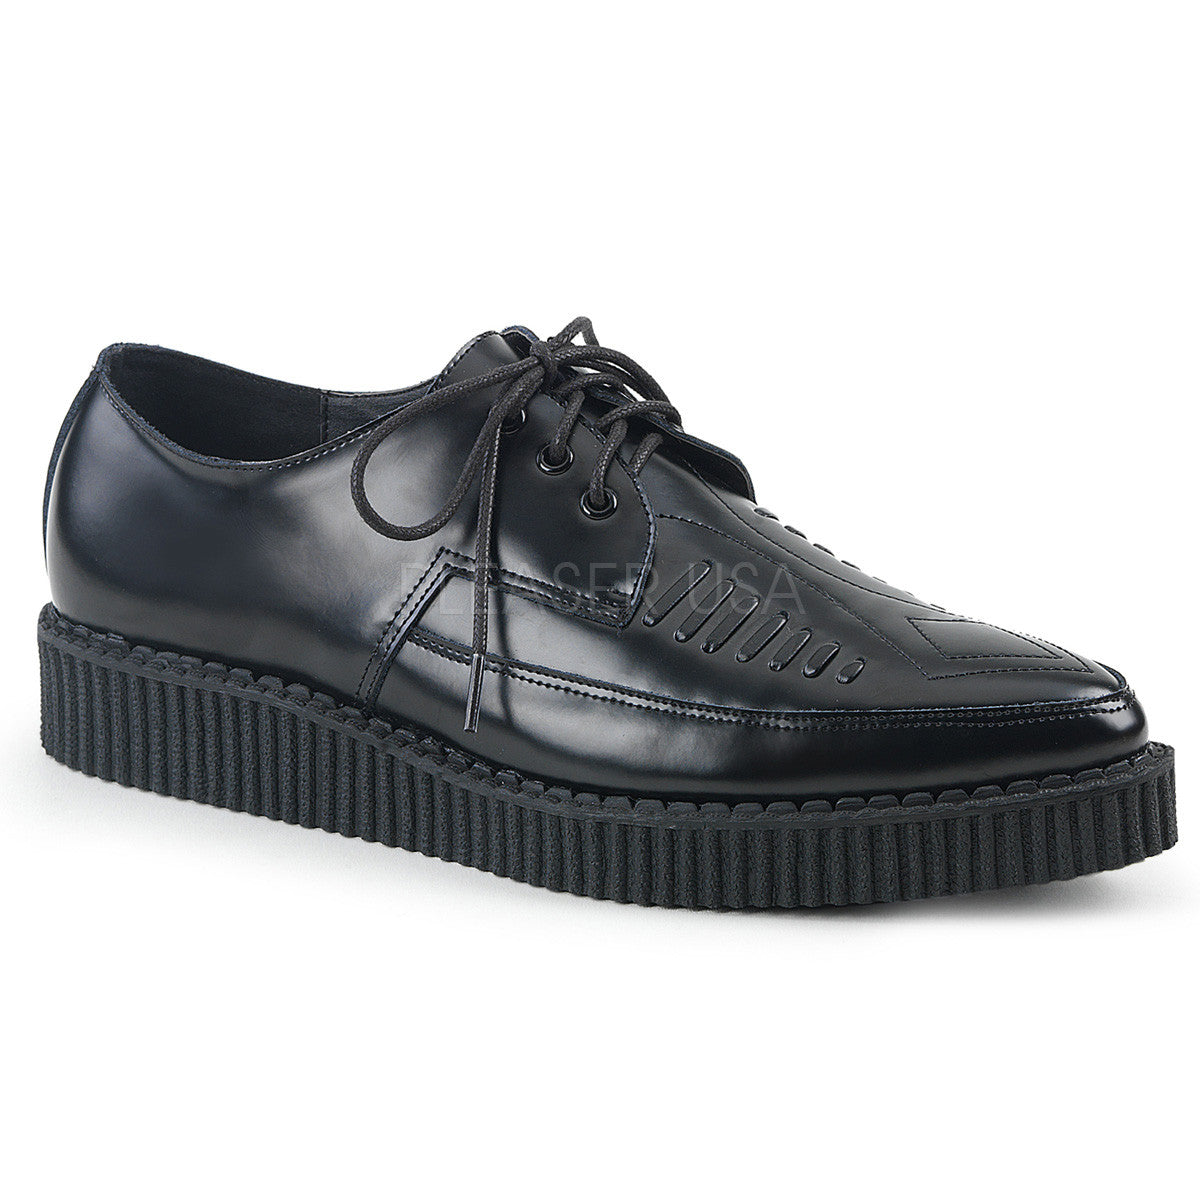 "1 1/4"" Platform Pointed Toe Oxford Creeper"